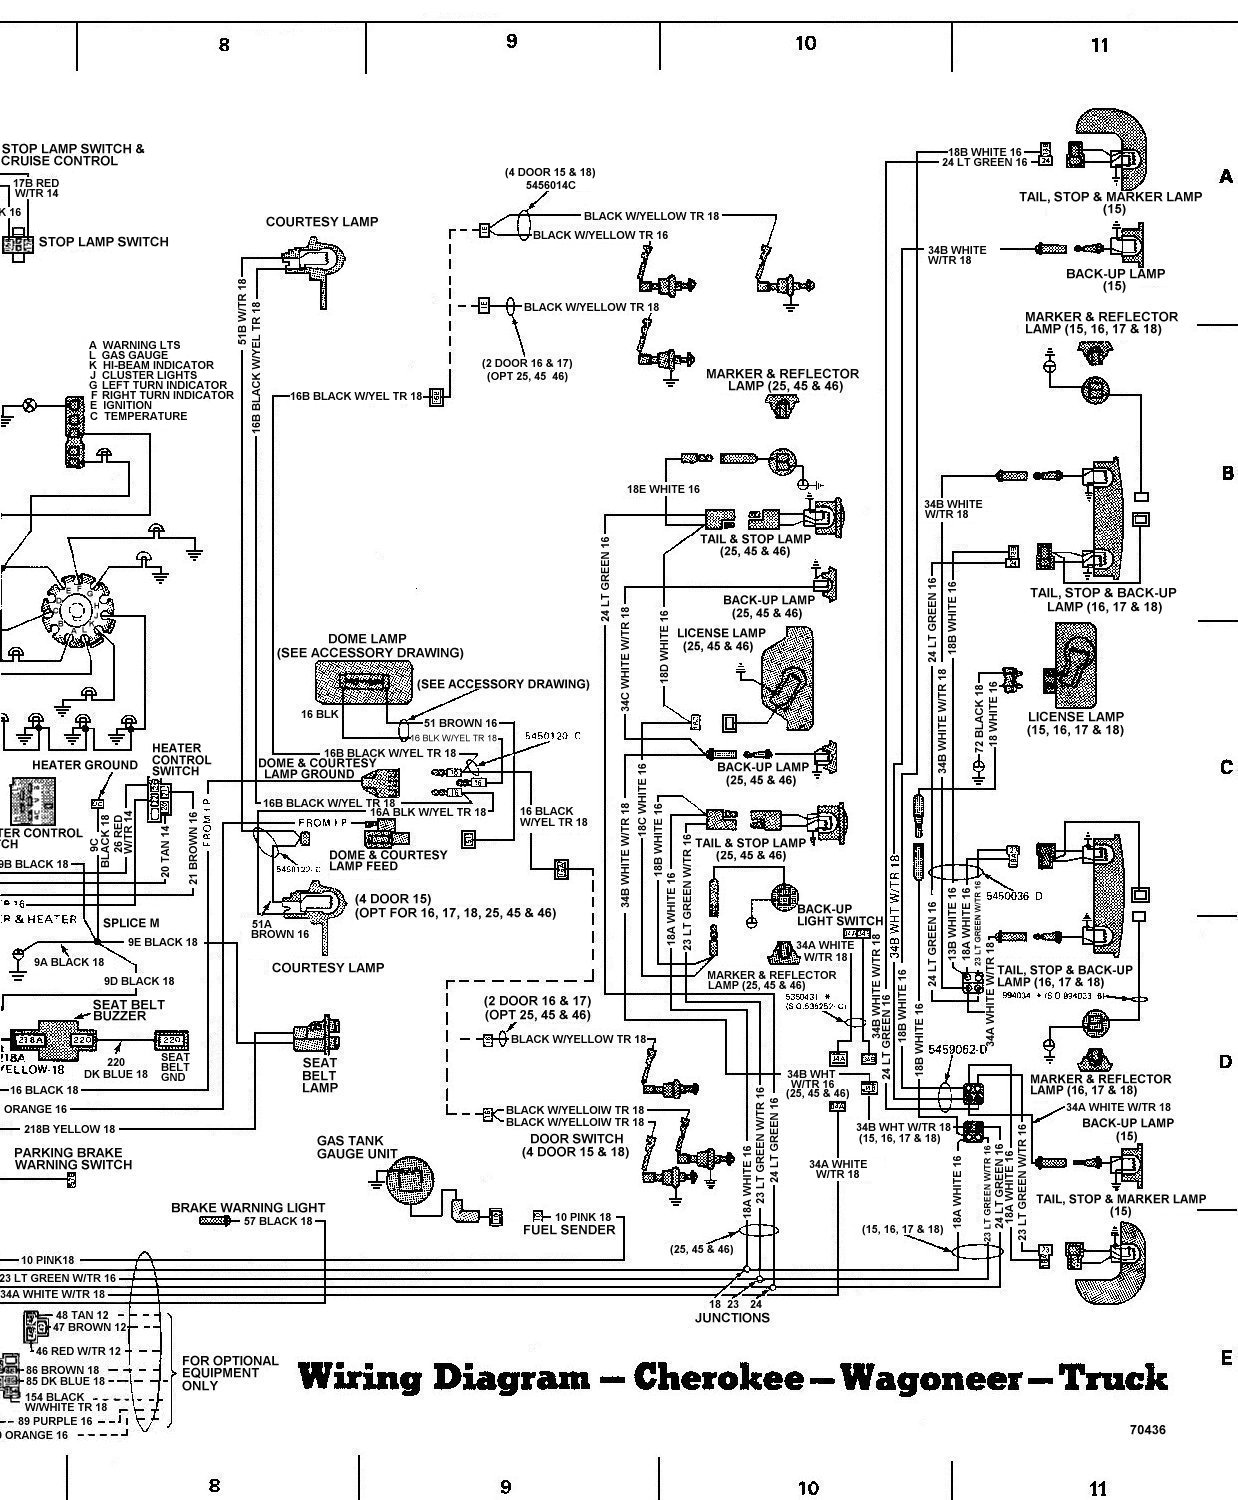 Jeep Commander Alternator Diagram